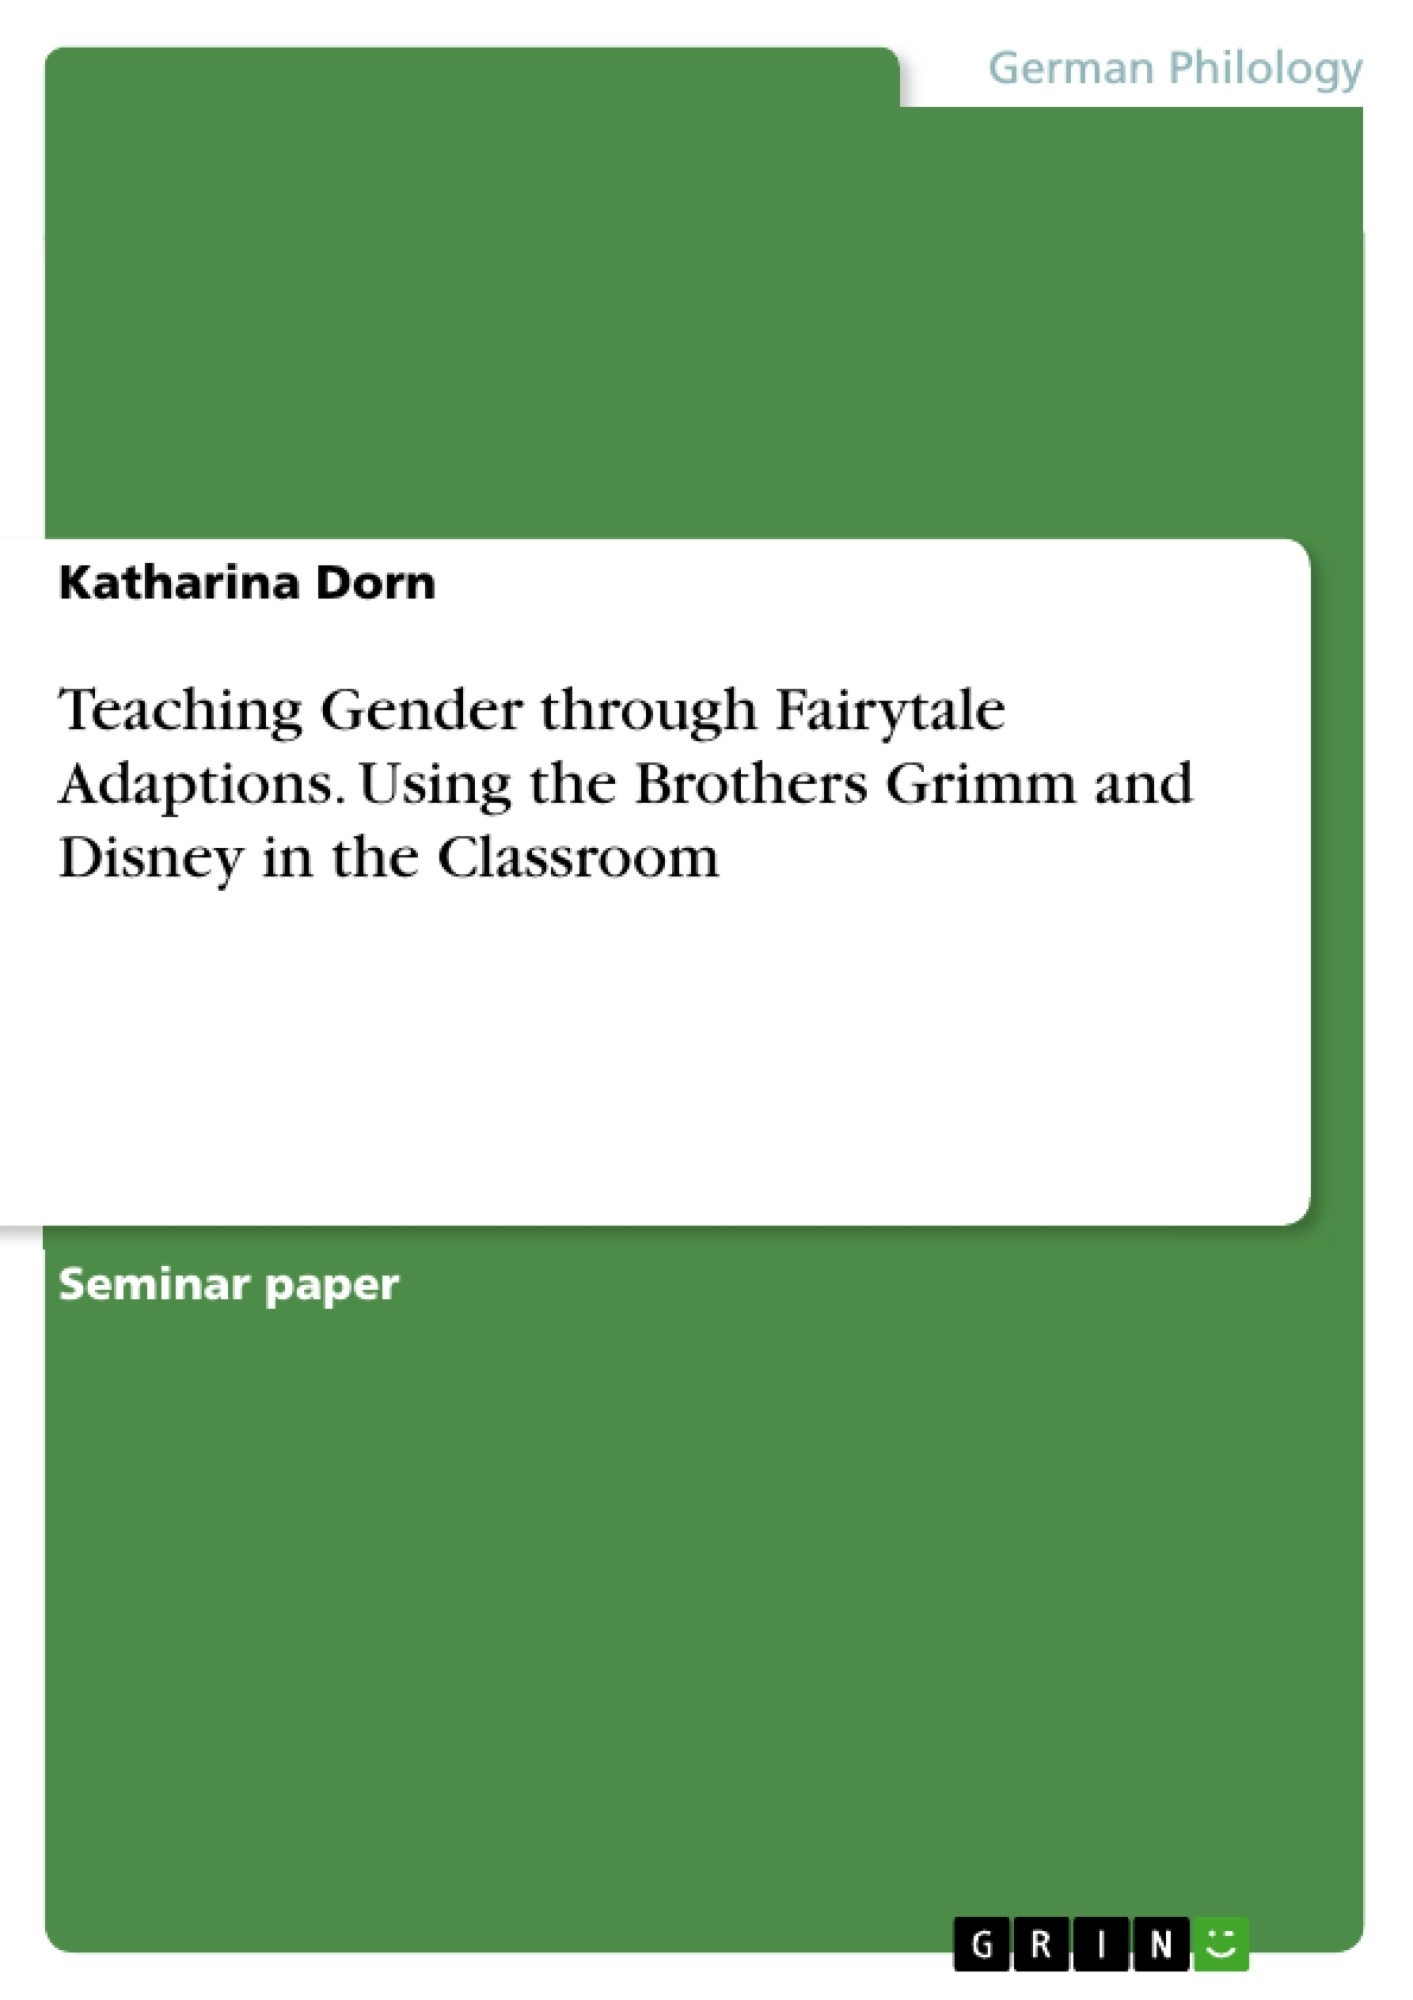 Title: Teaching Gender through Fairytale Adaptions. Using the Brothers Grimm and Disney in the Classroom